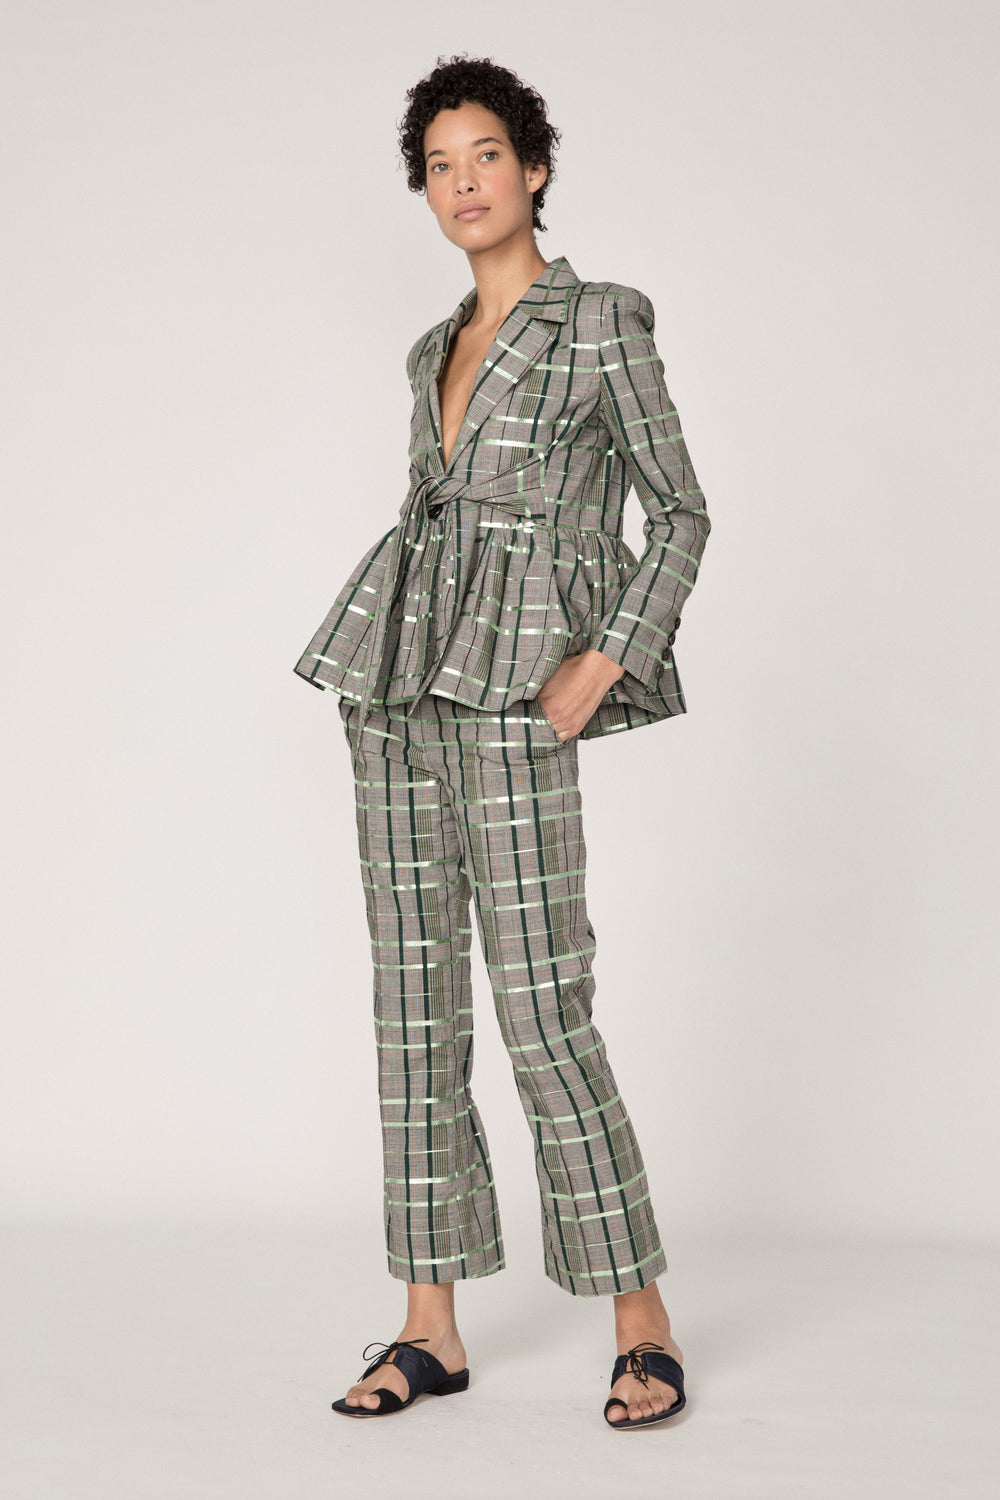 Rosie Assoulin Fall 2019 Scrunchy Pant. Straight leg cropped pant. Elastic behind the knee. Soft flare. Pockets. Finished with metallic foil. Green plaid. 98% Wool, 2% Polyester. Sizes 0 - 12.